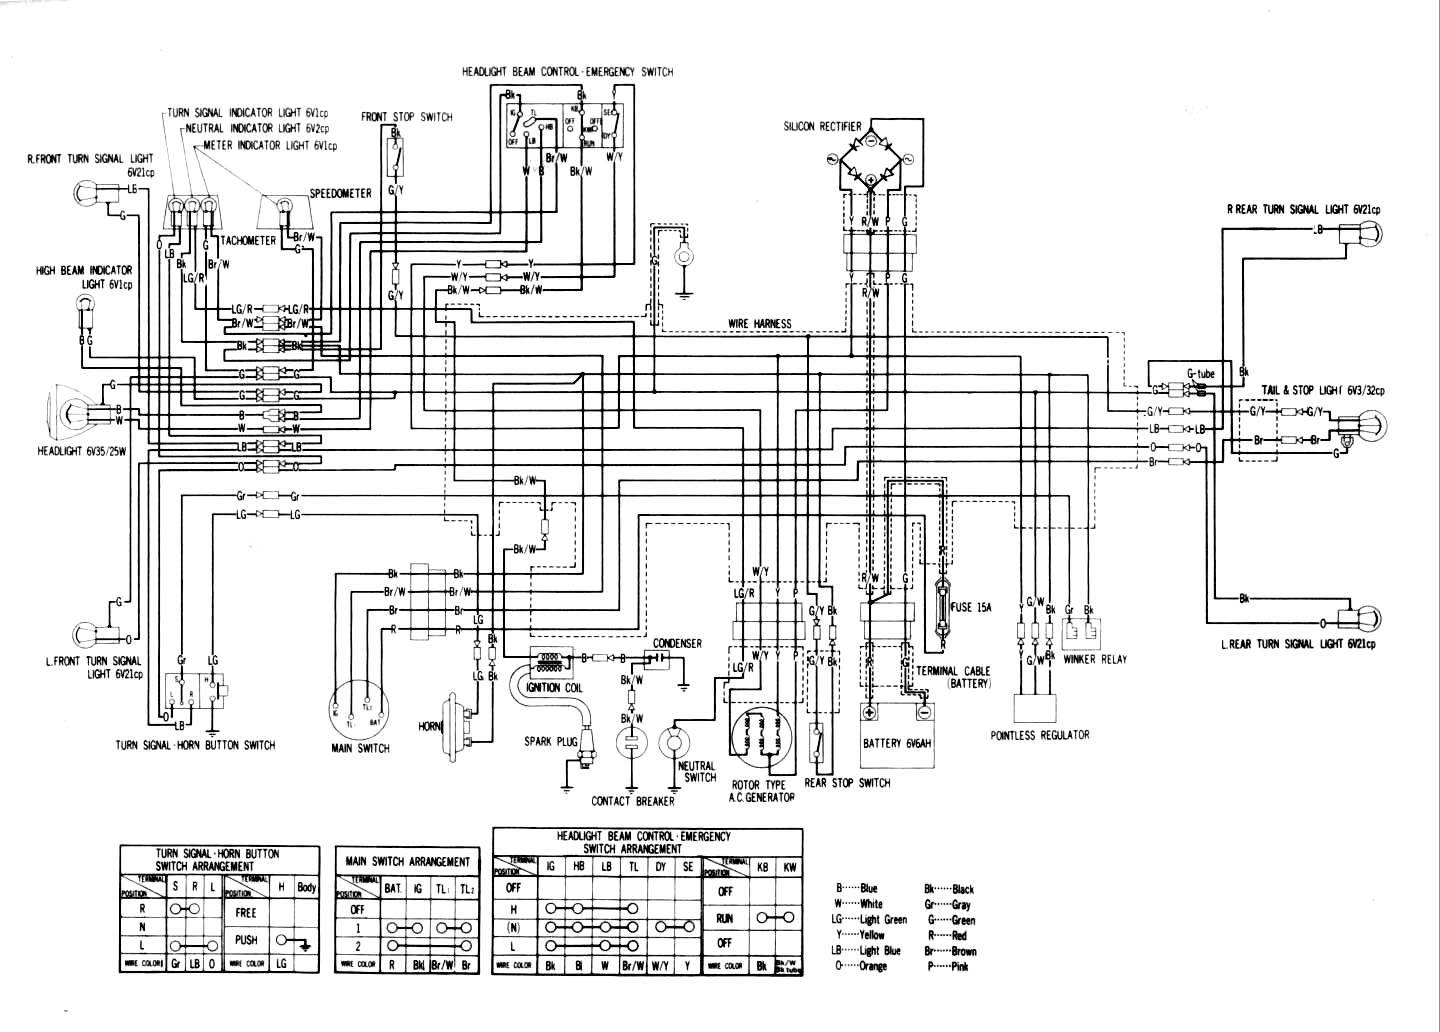 odyssey 250 atv wiring diagram with Cbx Wiring Diagram on 1984 Honda Fl250 Odyssey Wiring Diagram further Diagram Honda 300ex Wiring Trx 200 in addition Honda 400ex Wiring Diagram as well F  0701 together with Honda Cb750 Sohc Engine Diagram.